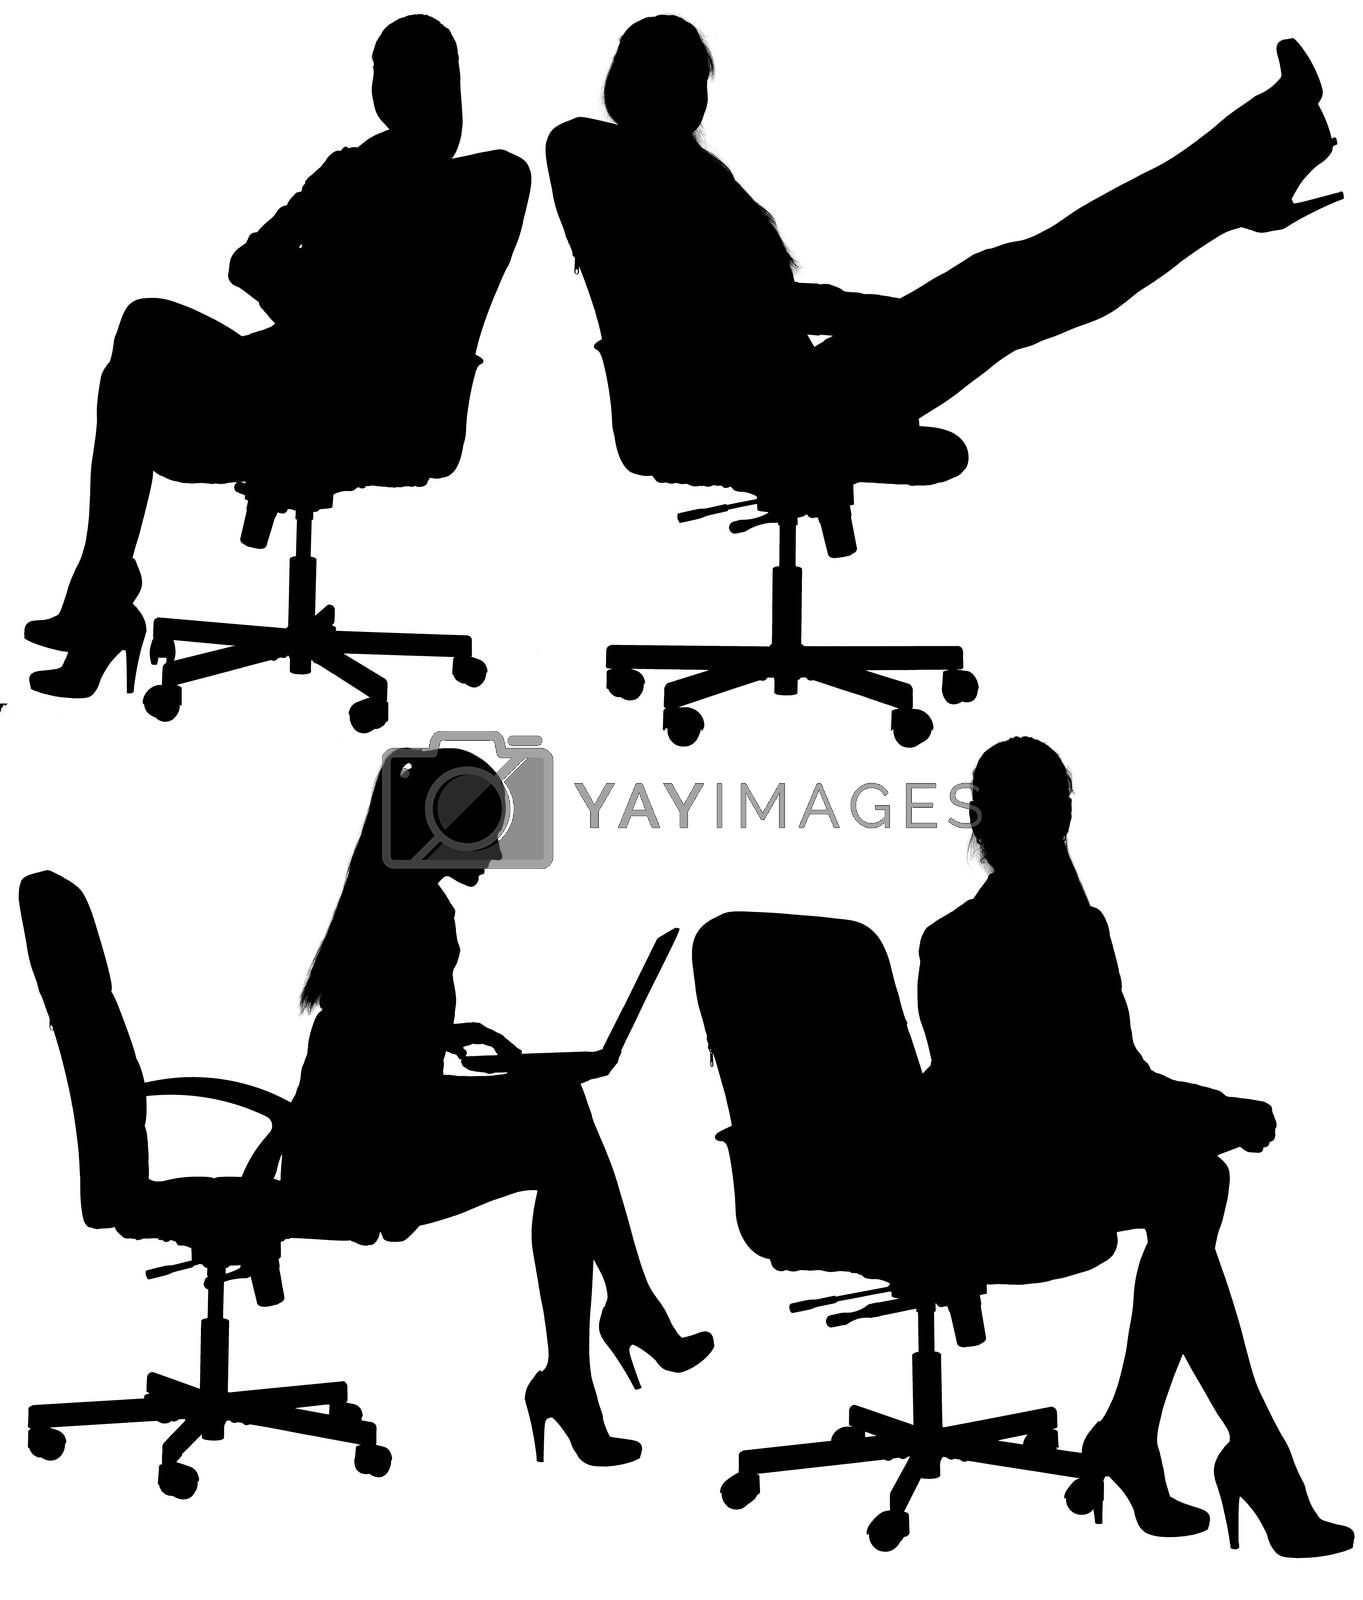 Business woman to sit in an office chair silhouette. Isolated white background